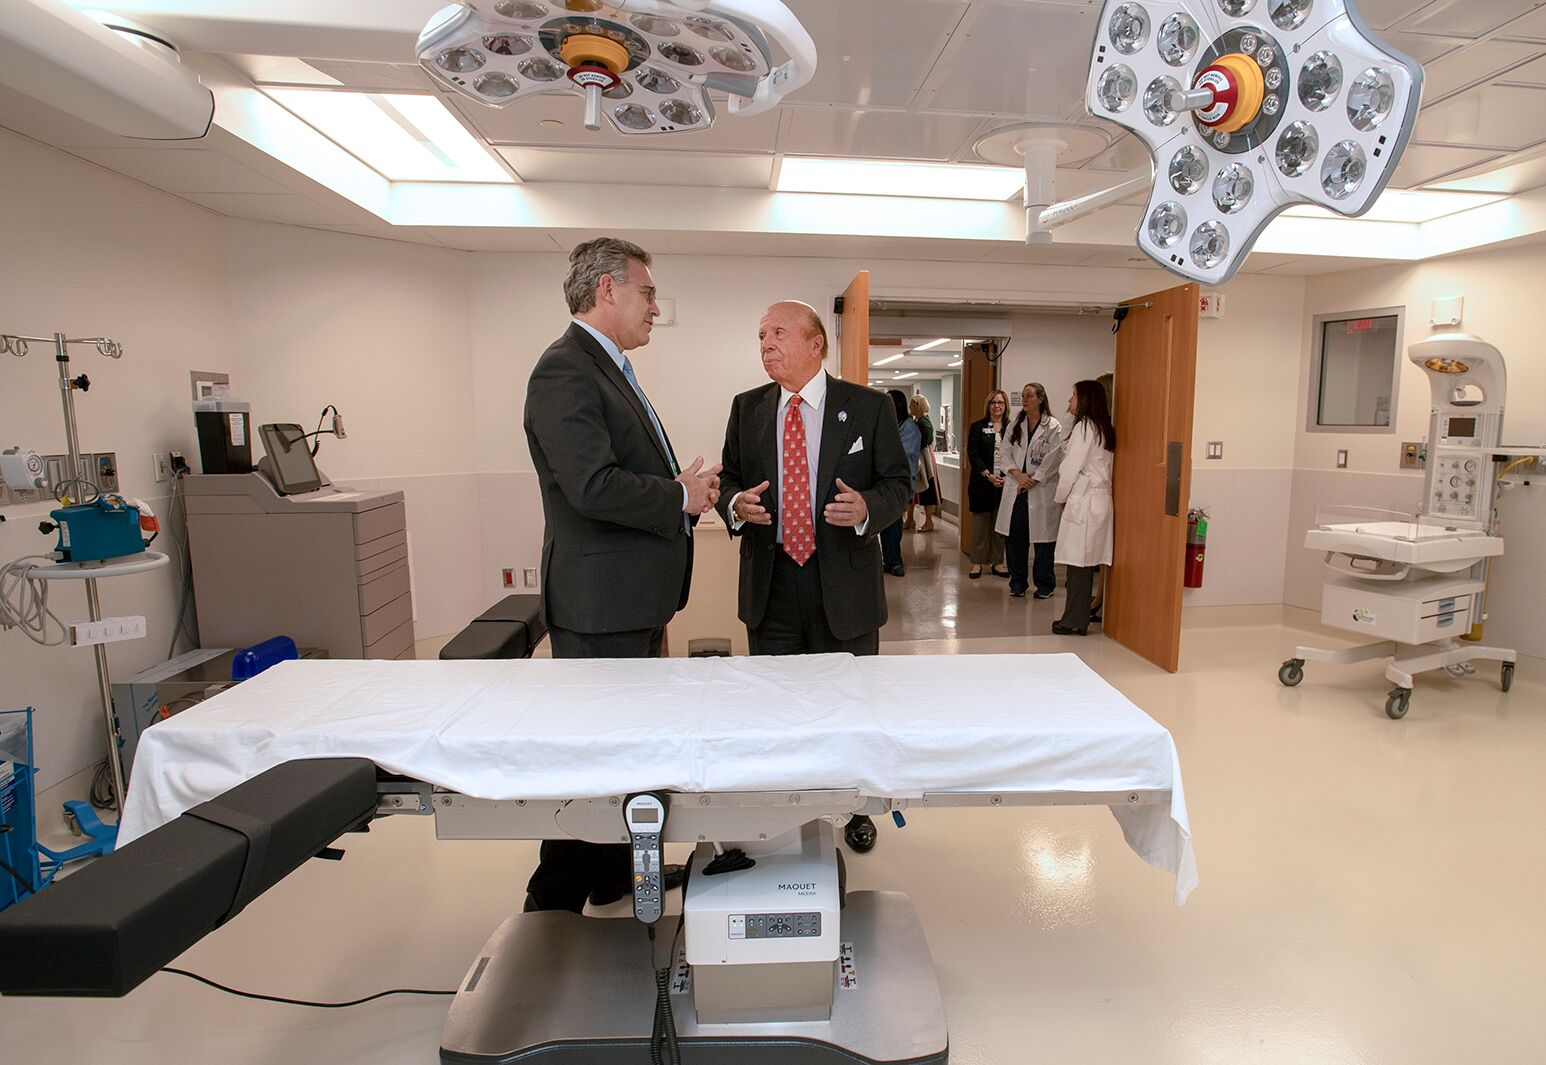 Northwell Health donor Saul Katz, right, tours Katz Women's Hospital's new operating room at North Shore University Hospital with Dr. Michael Nimaroff, the health system's senior vice president and executive director of obstetrics and gynecology.